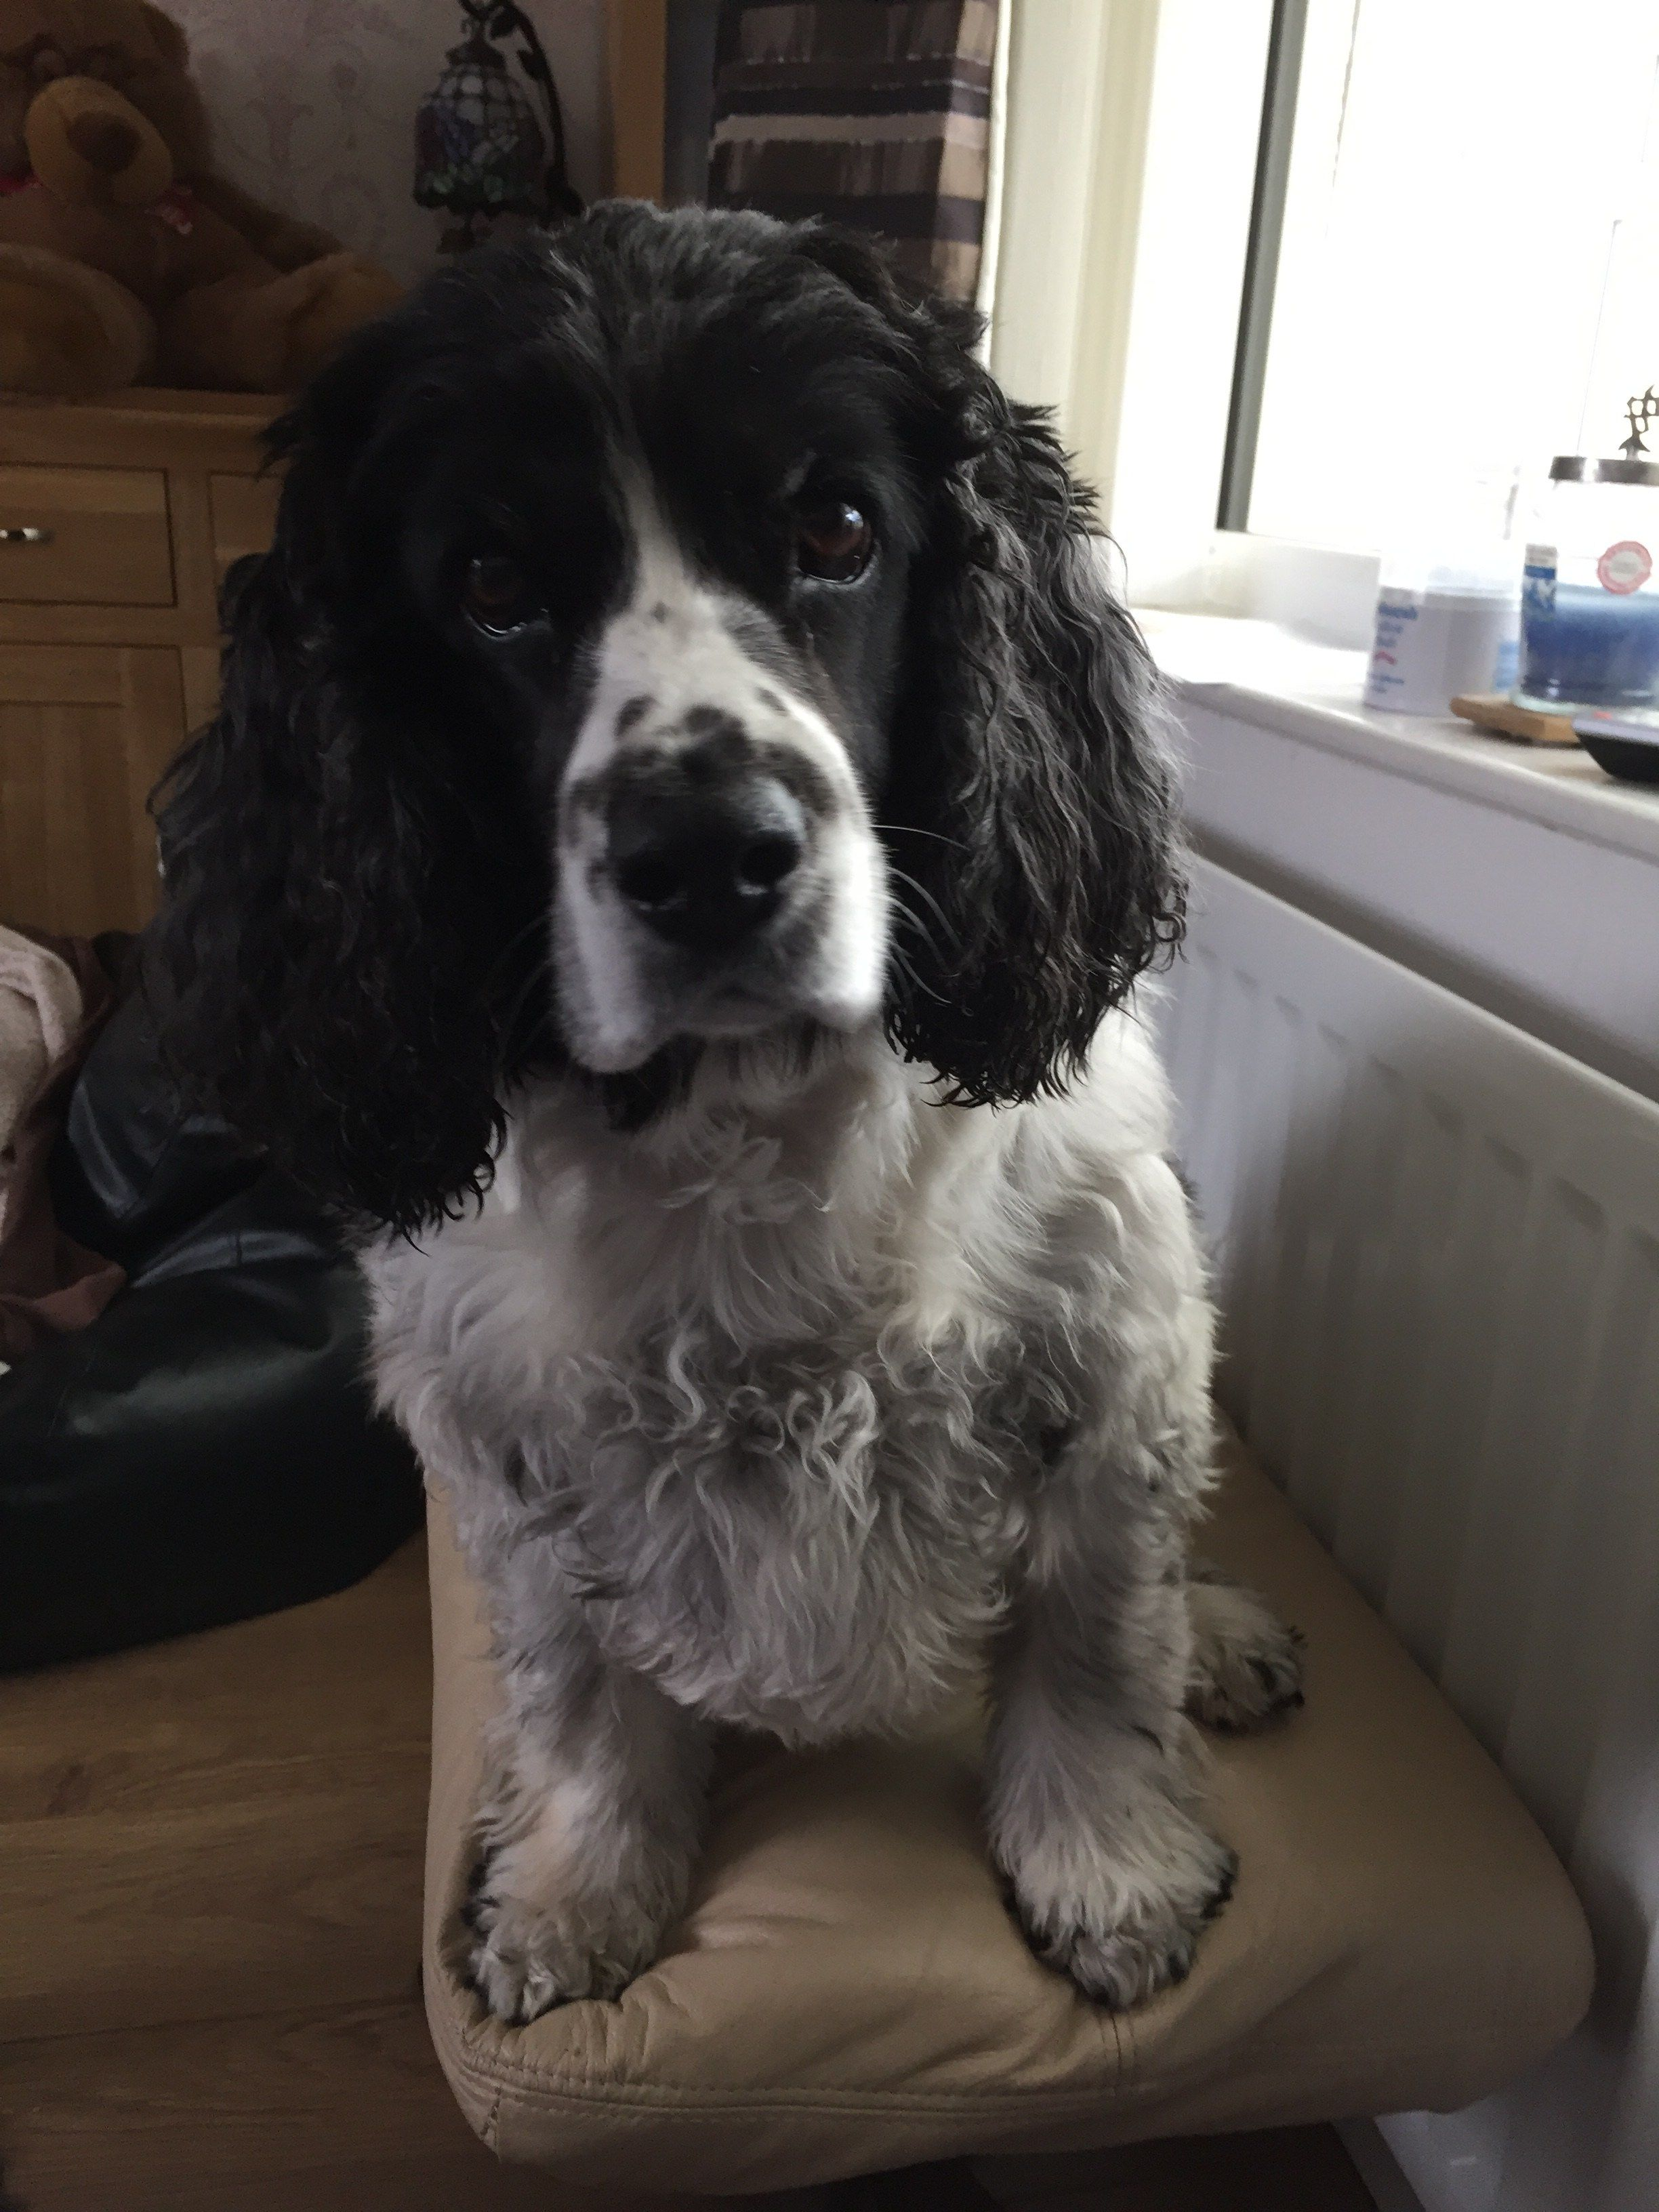 Tis A Dog S Life Meet My Cocker Spaniels Lucy And Rosie Cocker Spaniel Dogs Spaniel